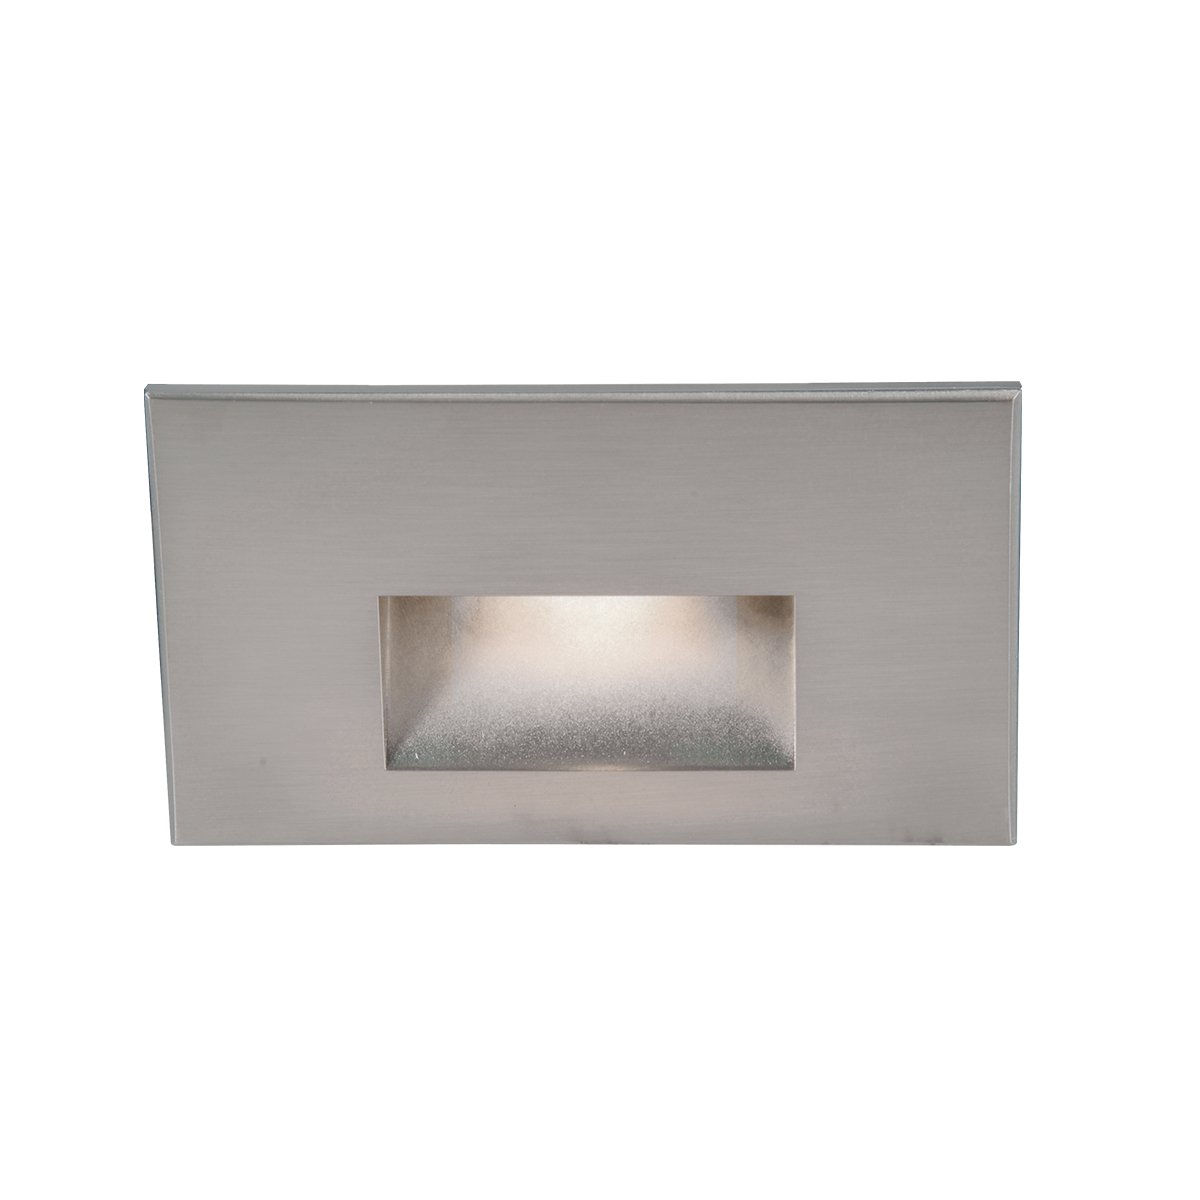 WAC Lighting WL-LED100F-C-SS 277V Horizontal Step Light, White 3000K by WAC Lighting